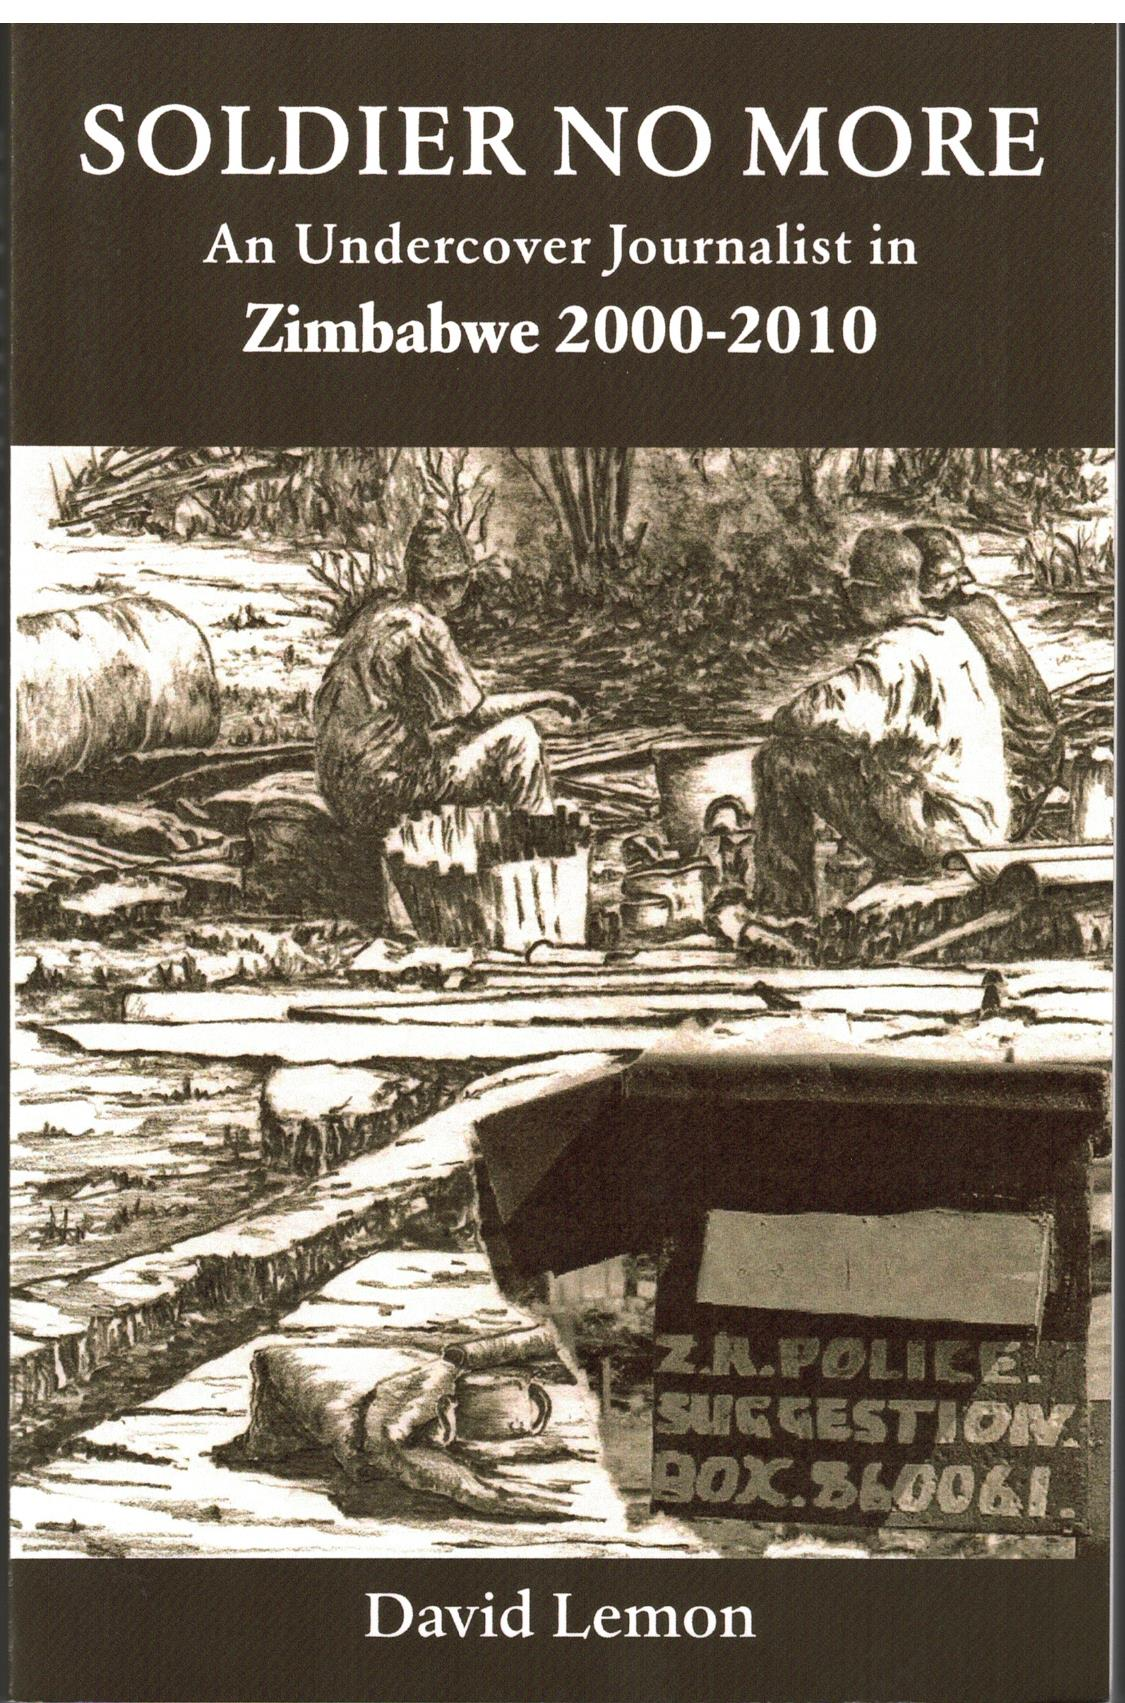 Image for Soldier No More - an undercover journalist in Zimbabwe 2000 - 2010